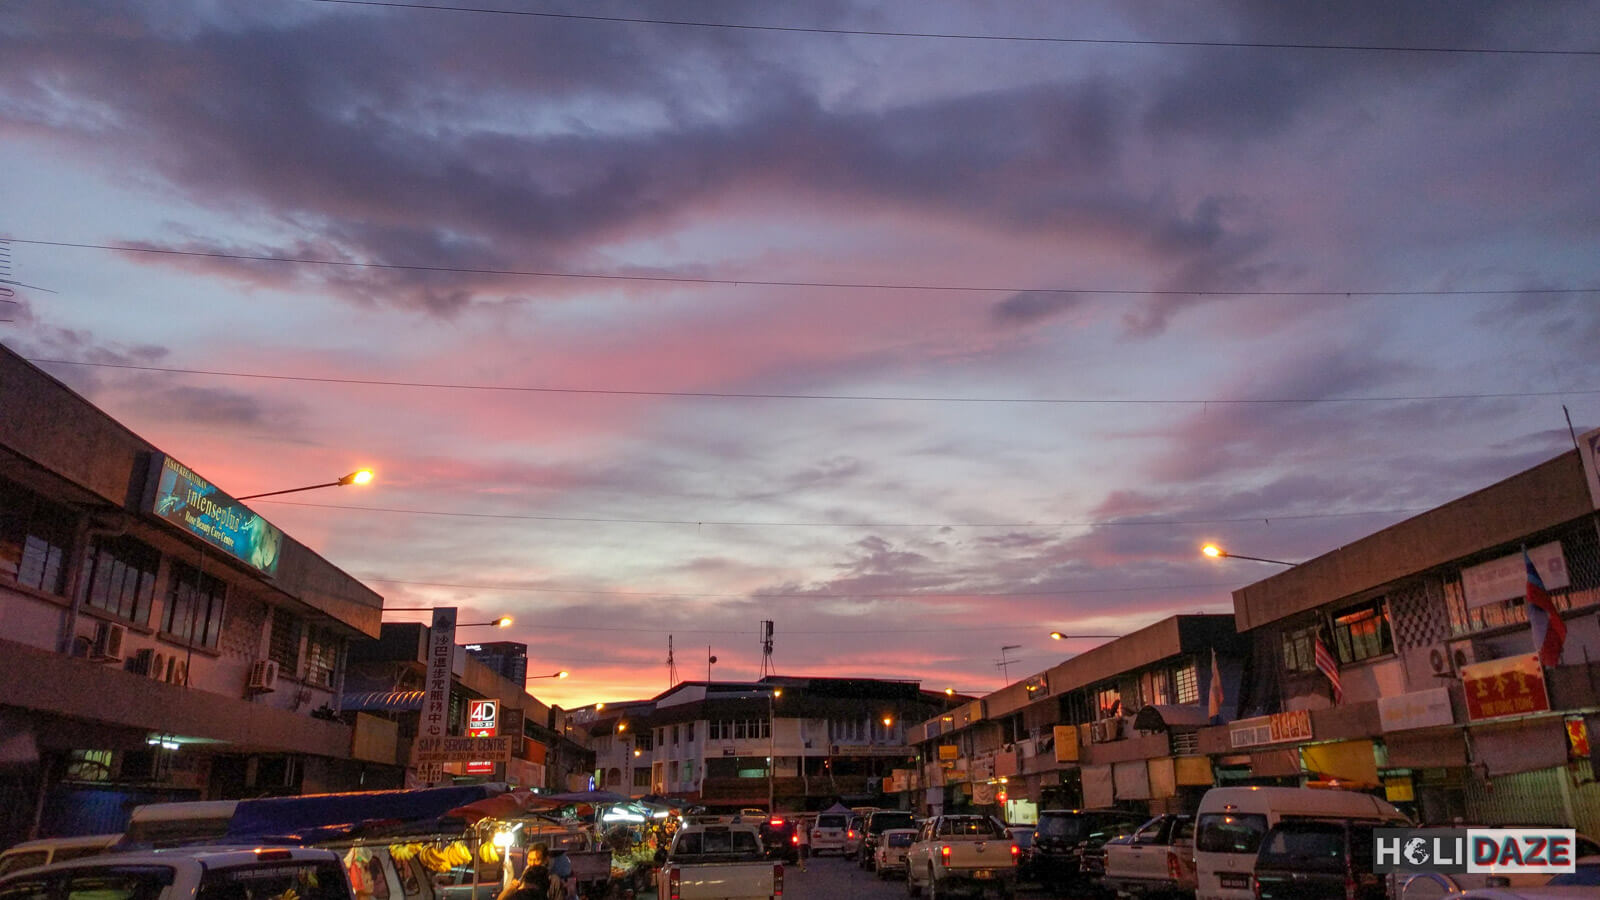 Kota Kinabalu is one of the top places to view the sunset in Sabah